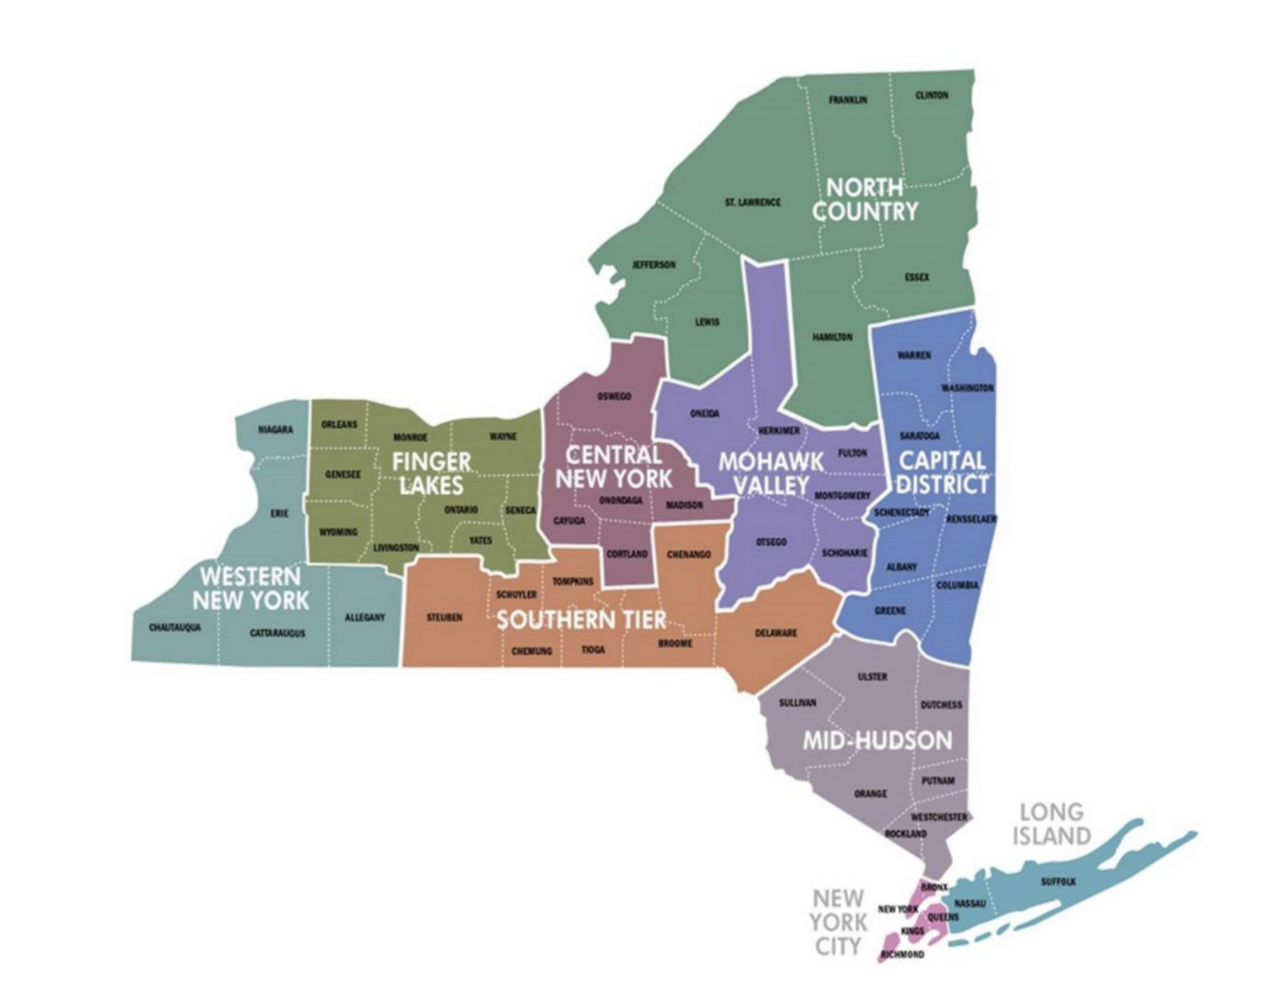 Mapa das regiões do estado de NY, com as 3 que vão avançar de fase no sudeste - New York City, Mid Hudson e Long Island